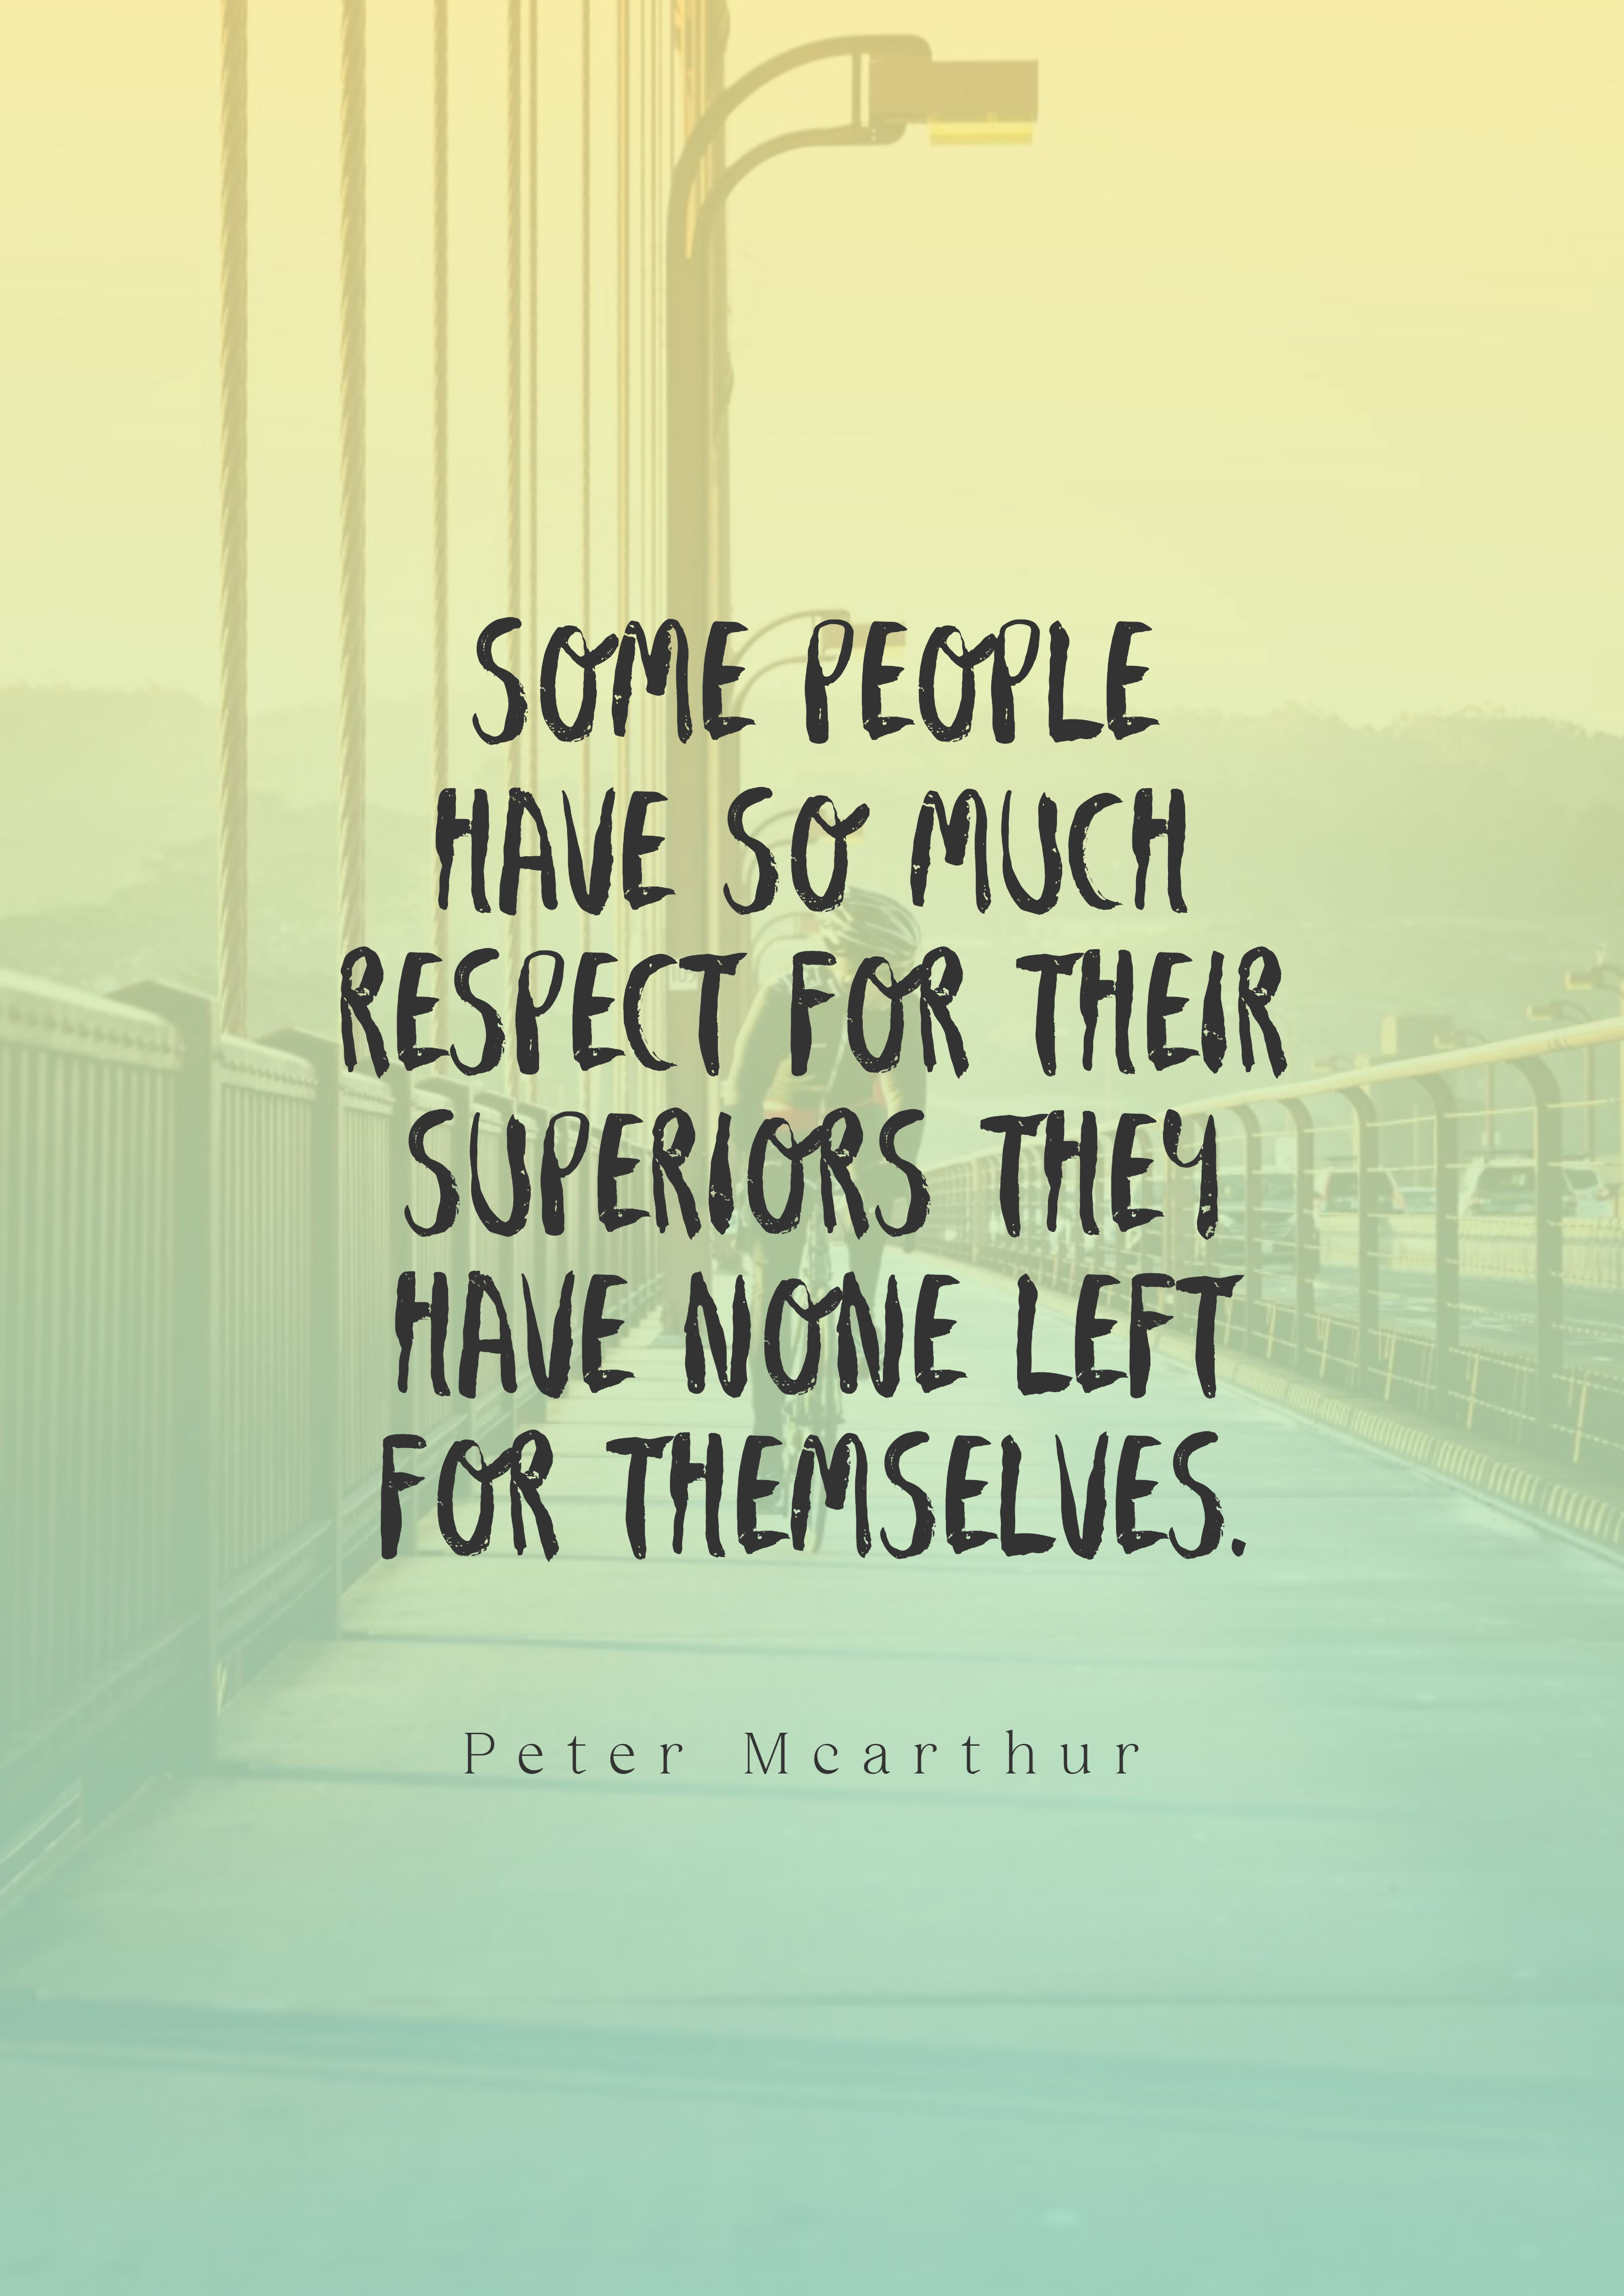 Quotes image of Some people have so much respect for their superiors they have none left for themselves.